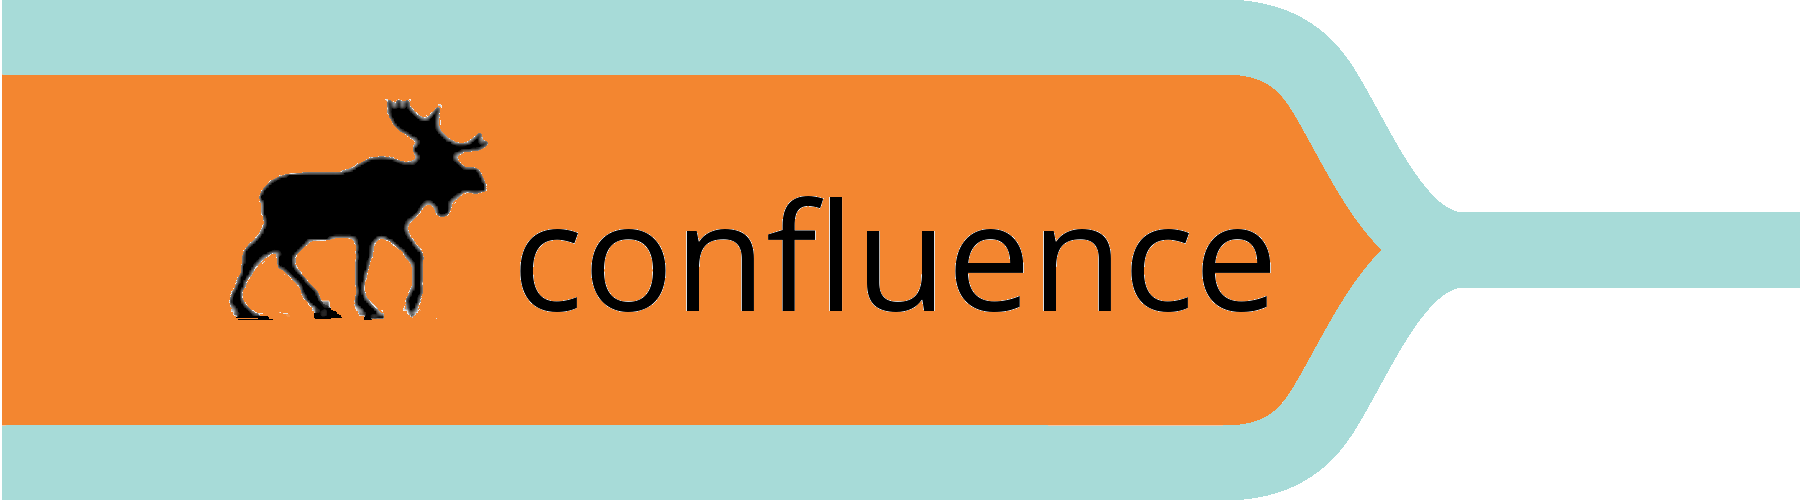 confluence banner coloured